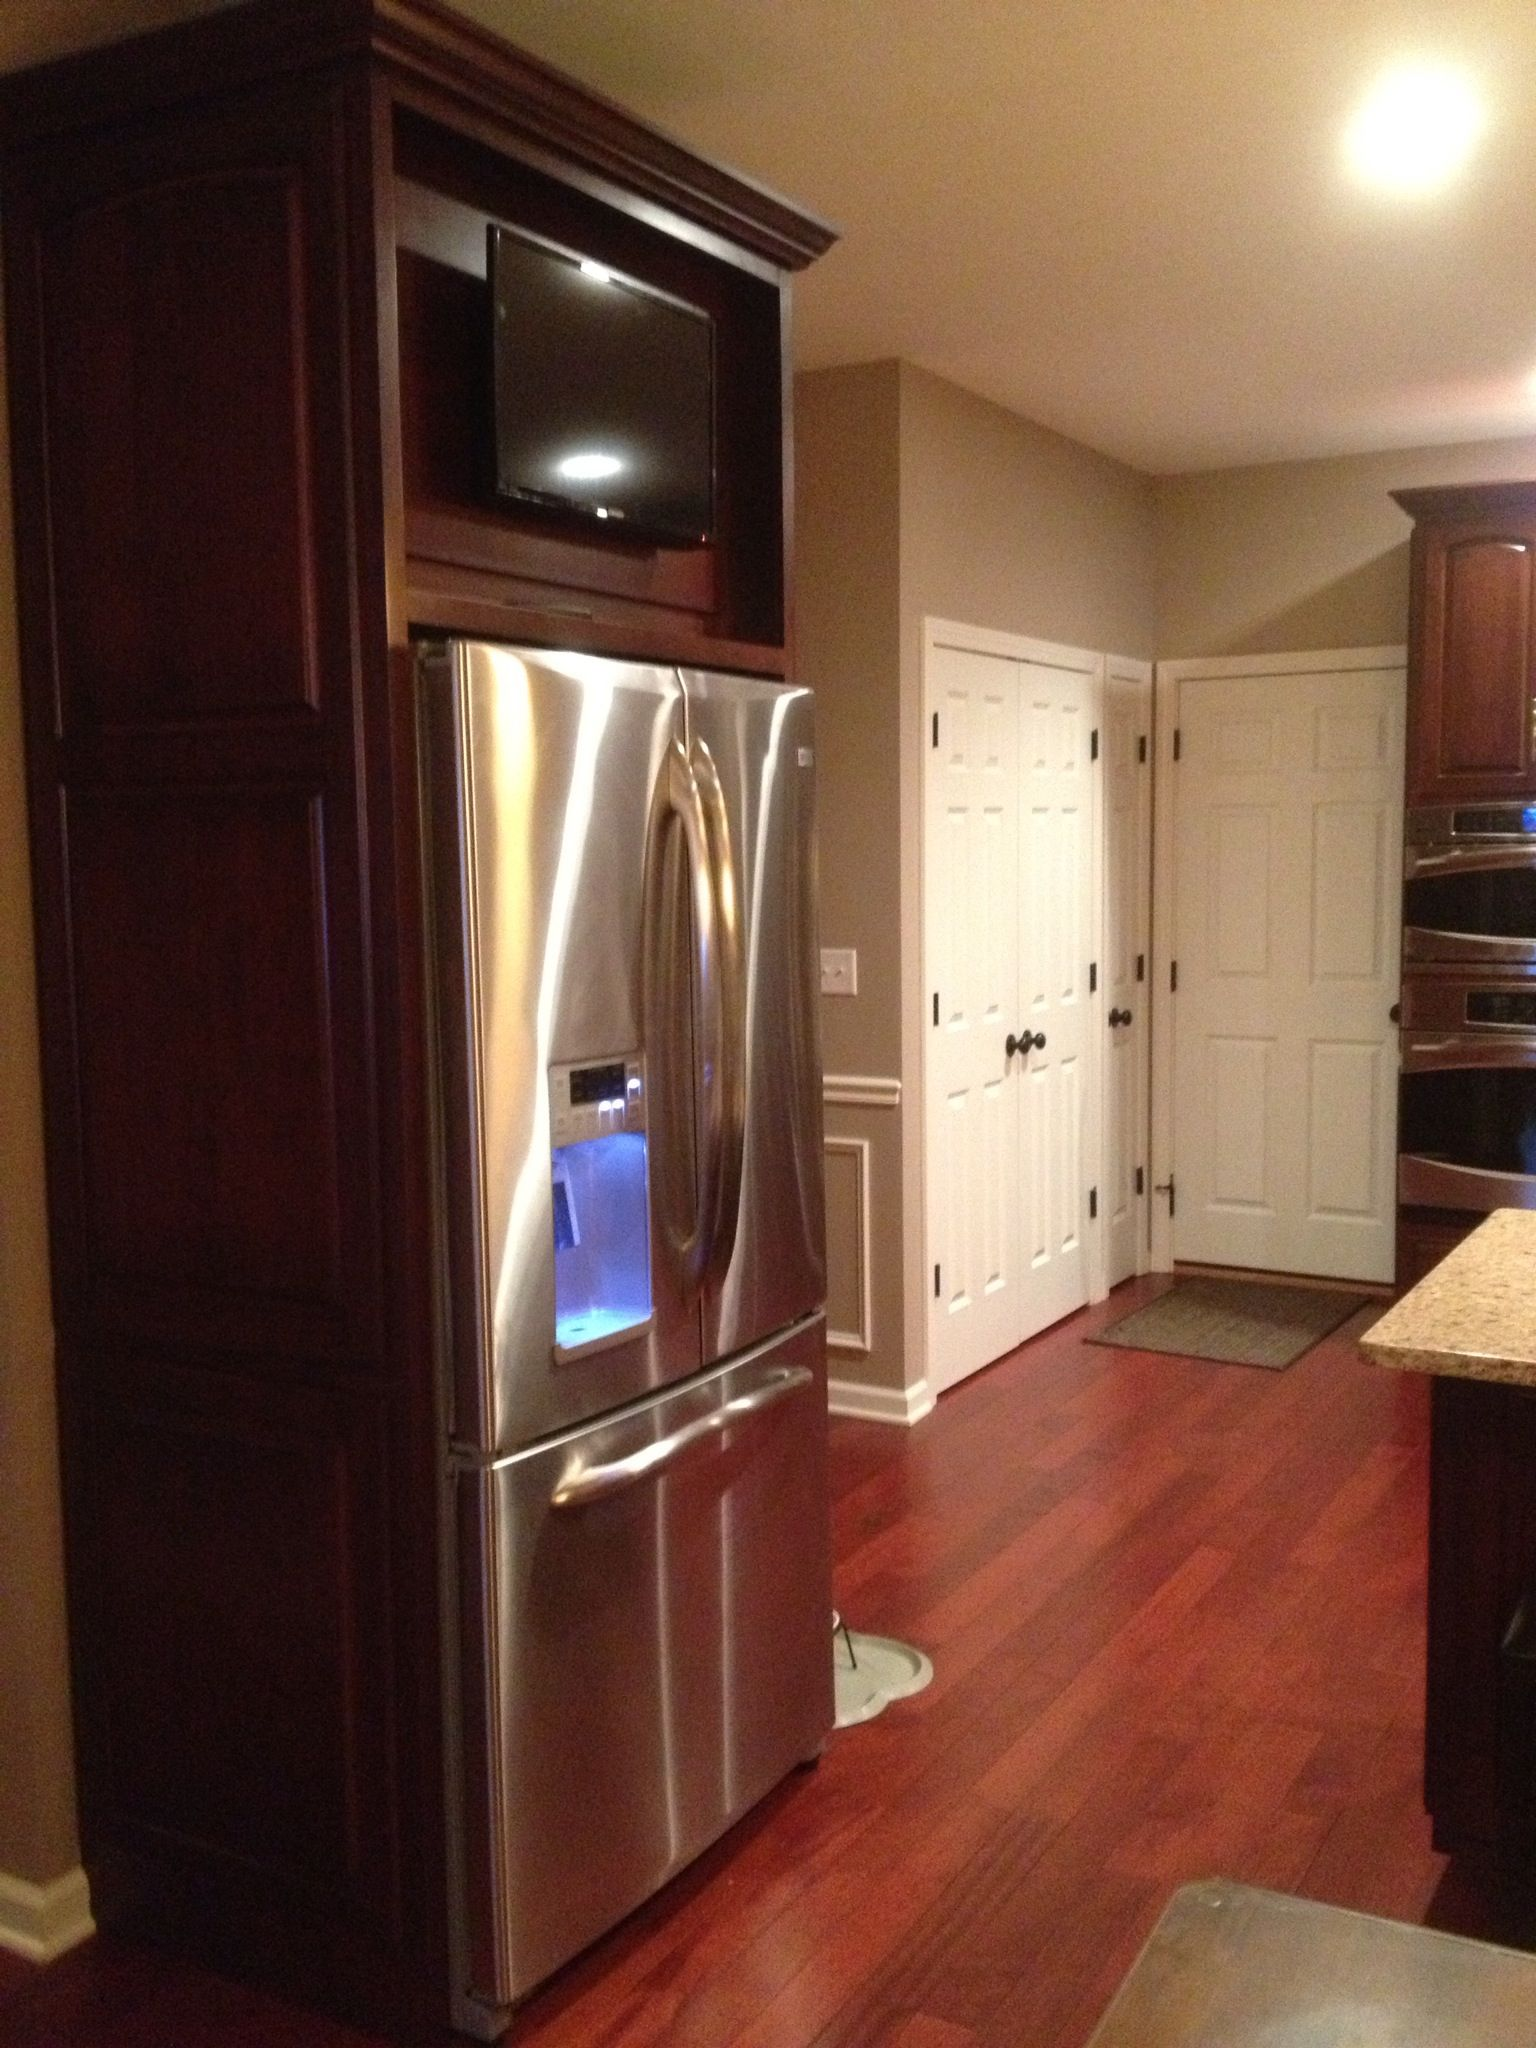 TV mounted above refrigerator on a cabinet door that is hinged ...